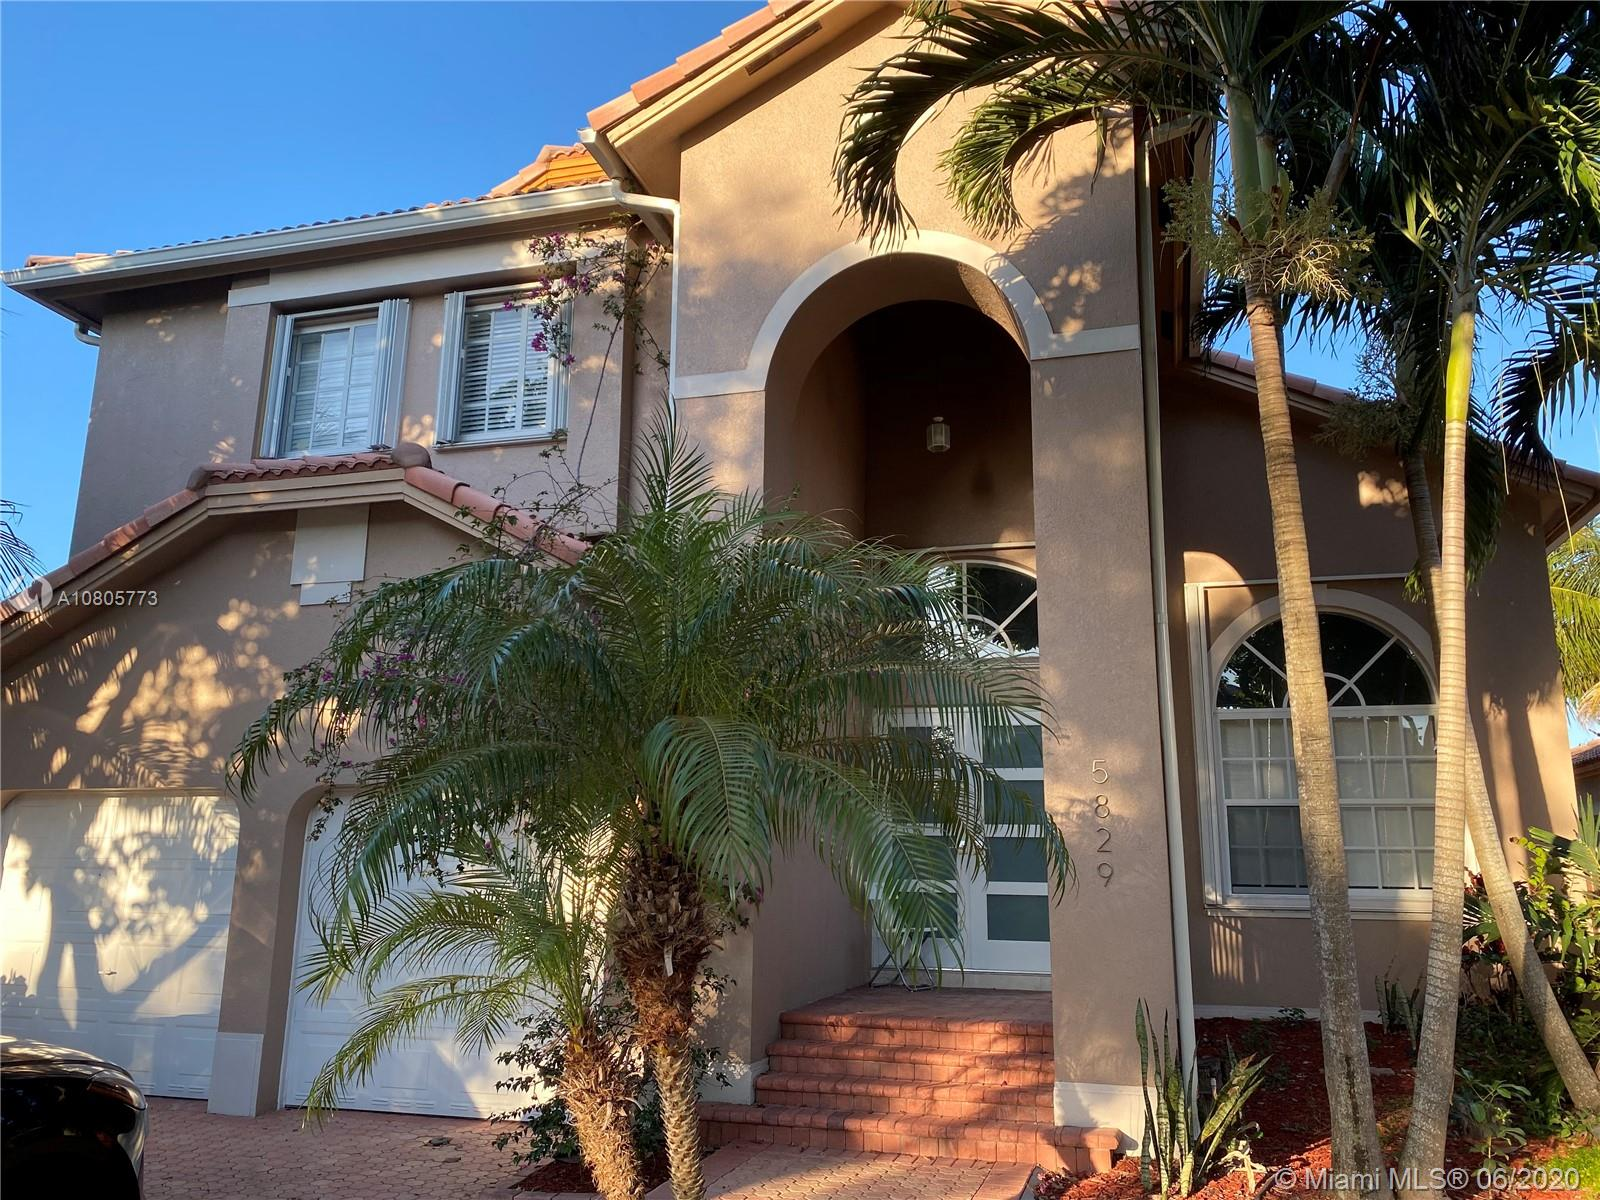 5829 NW 108th Pl, Doral in Miami-dade County County, FL 33178 Home for Sale